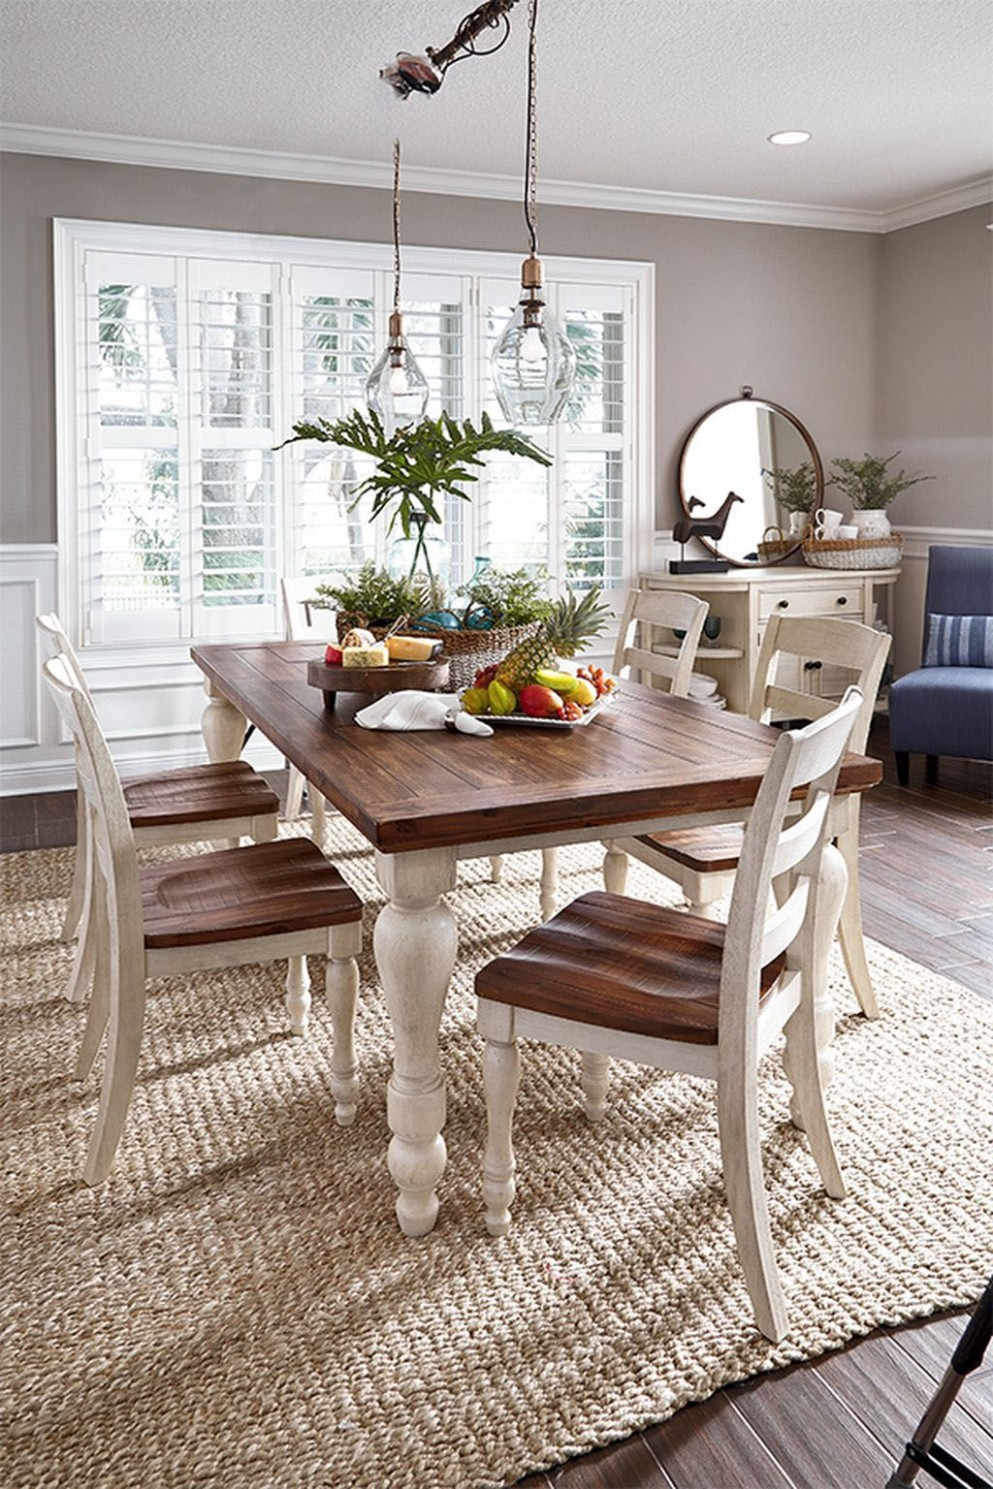 Fantastic dining room ideas classic one and only interioropedia  - Dining Room Ideas Classic